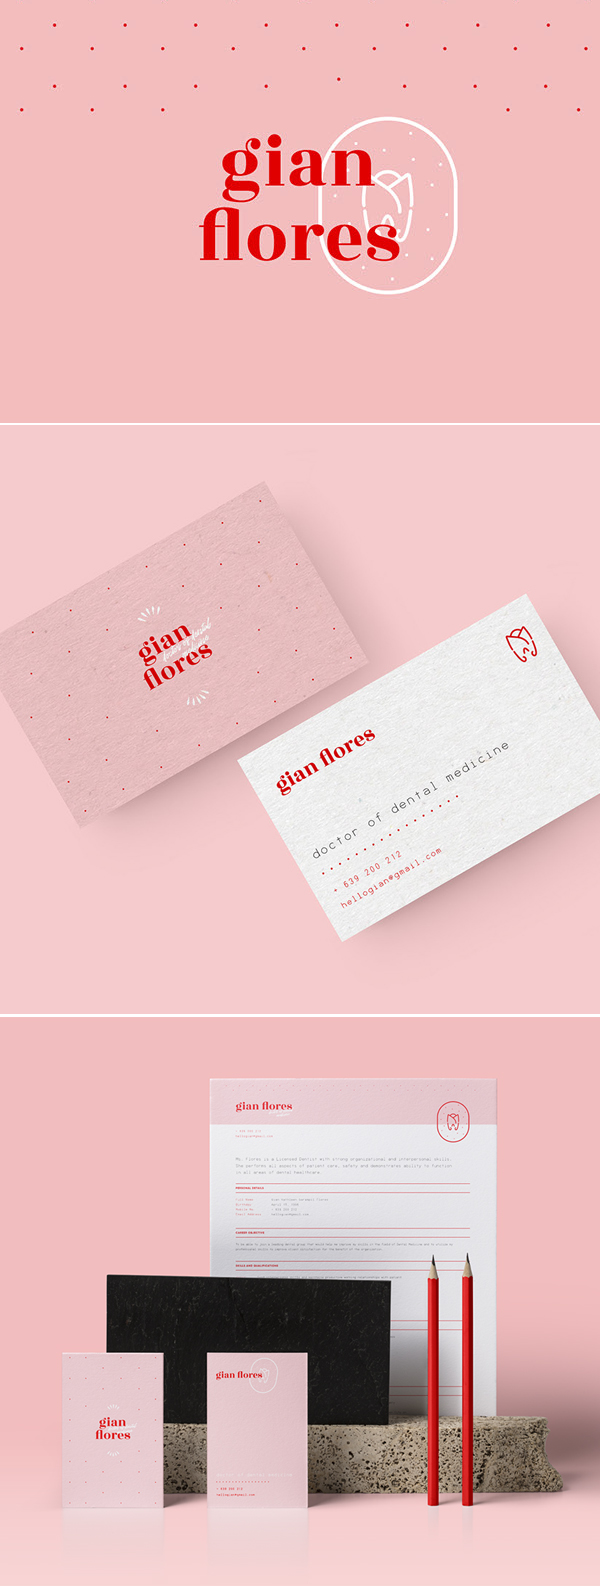 Dr. Gian Flores Personal Identity branding by Princess Nicole Castaneda